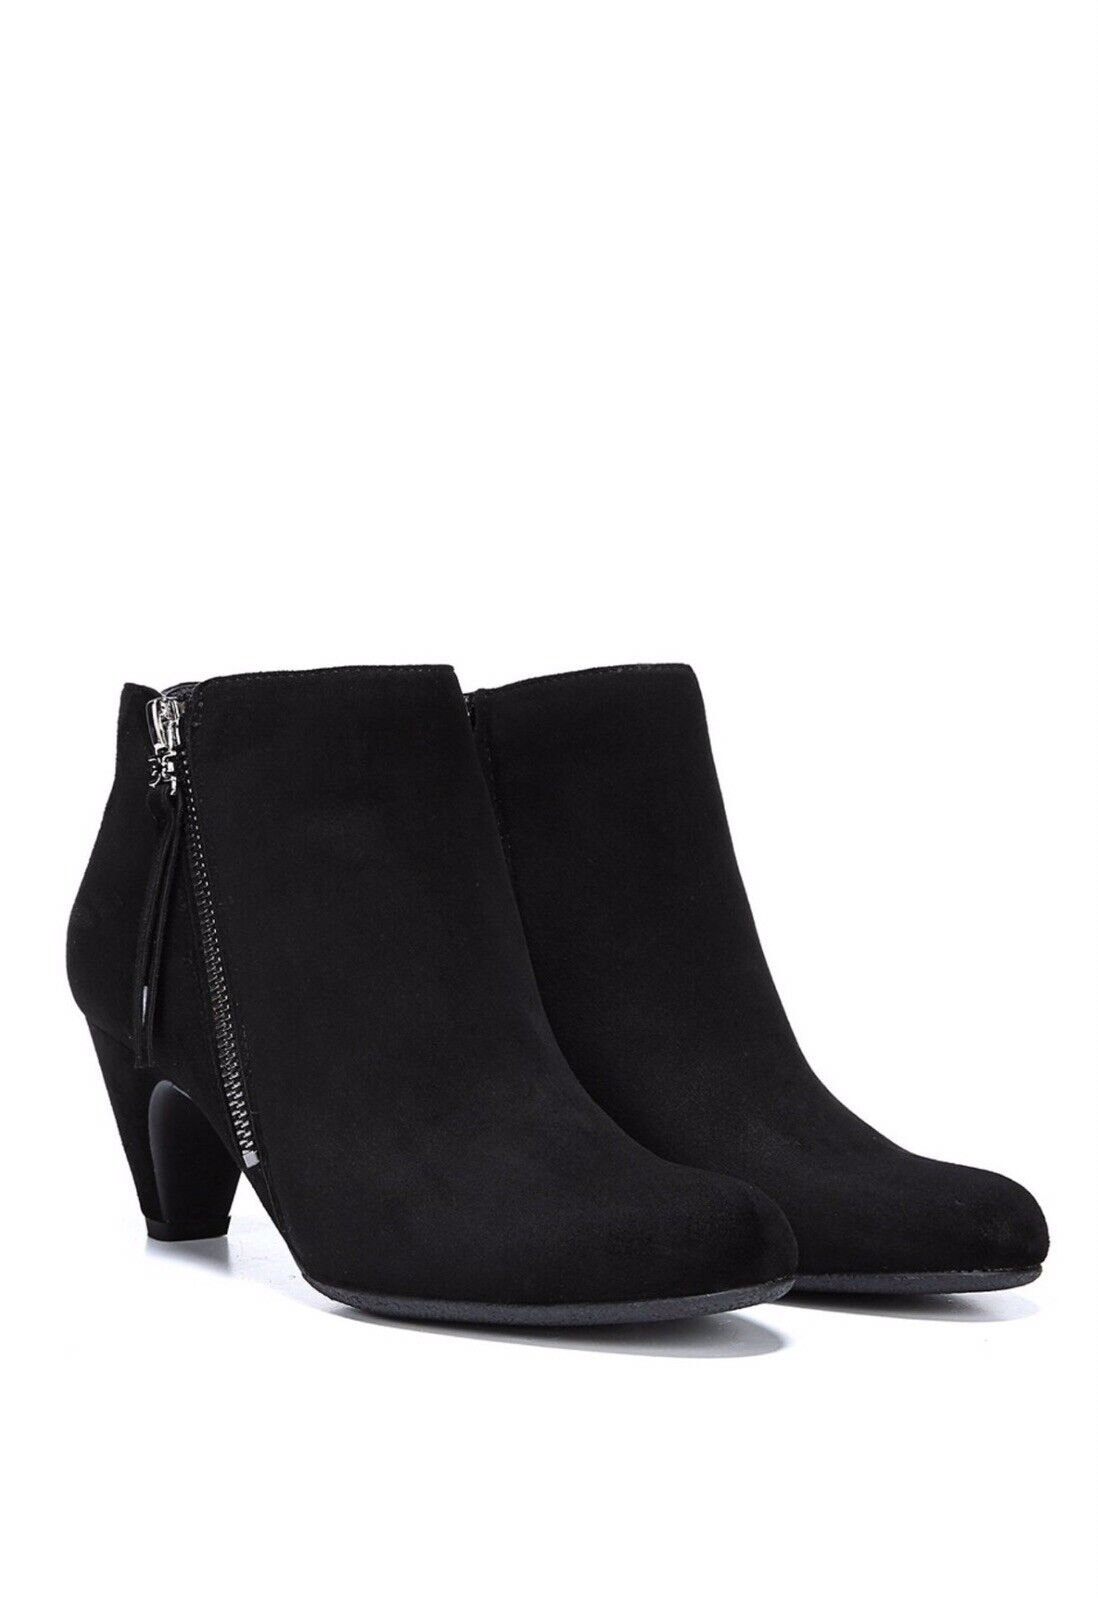 Sam Edelman Mavis Ankle Boot Black Suede Leather Double Zip Heeled Bootie 7.5